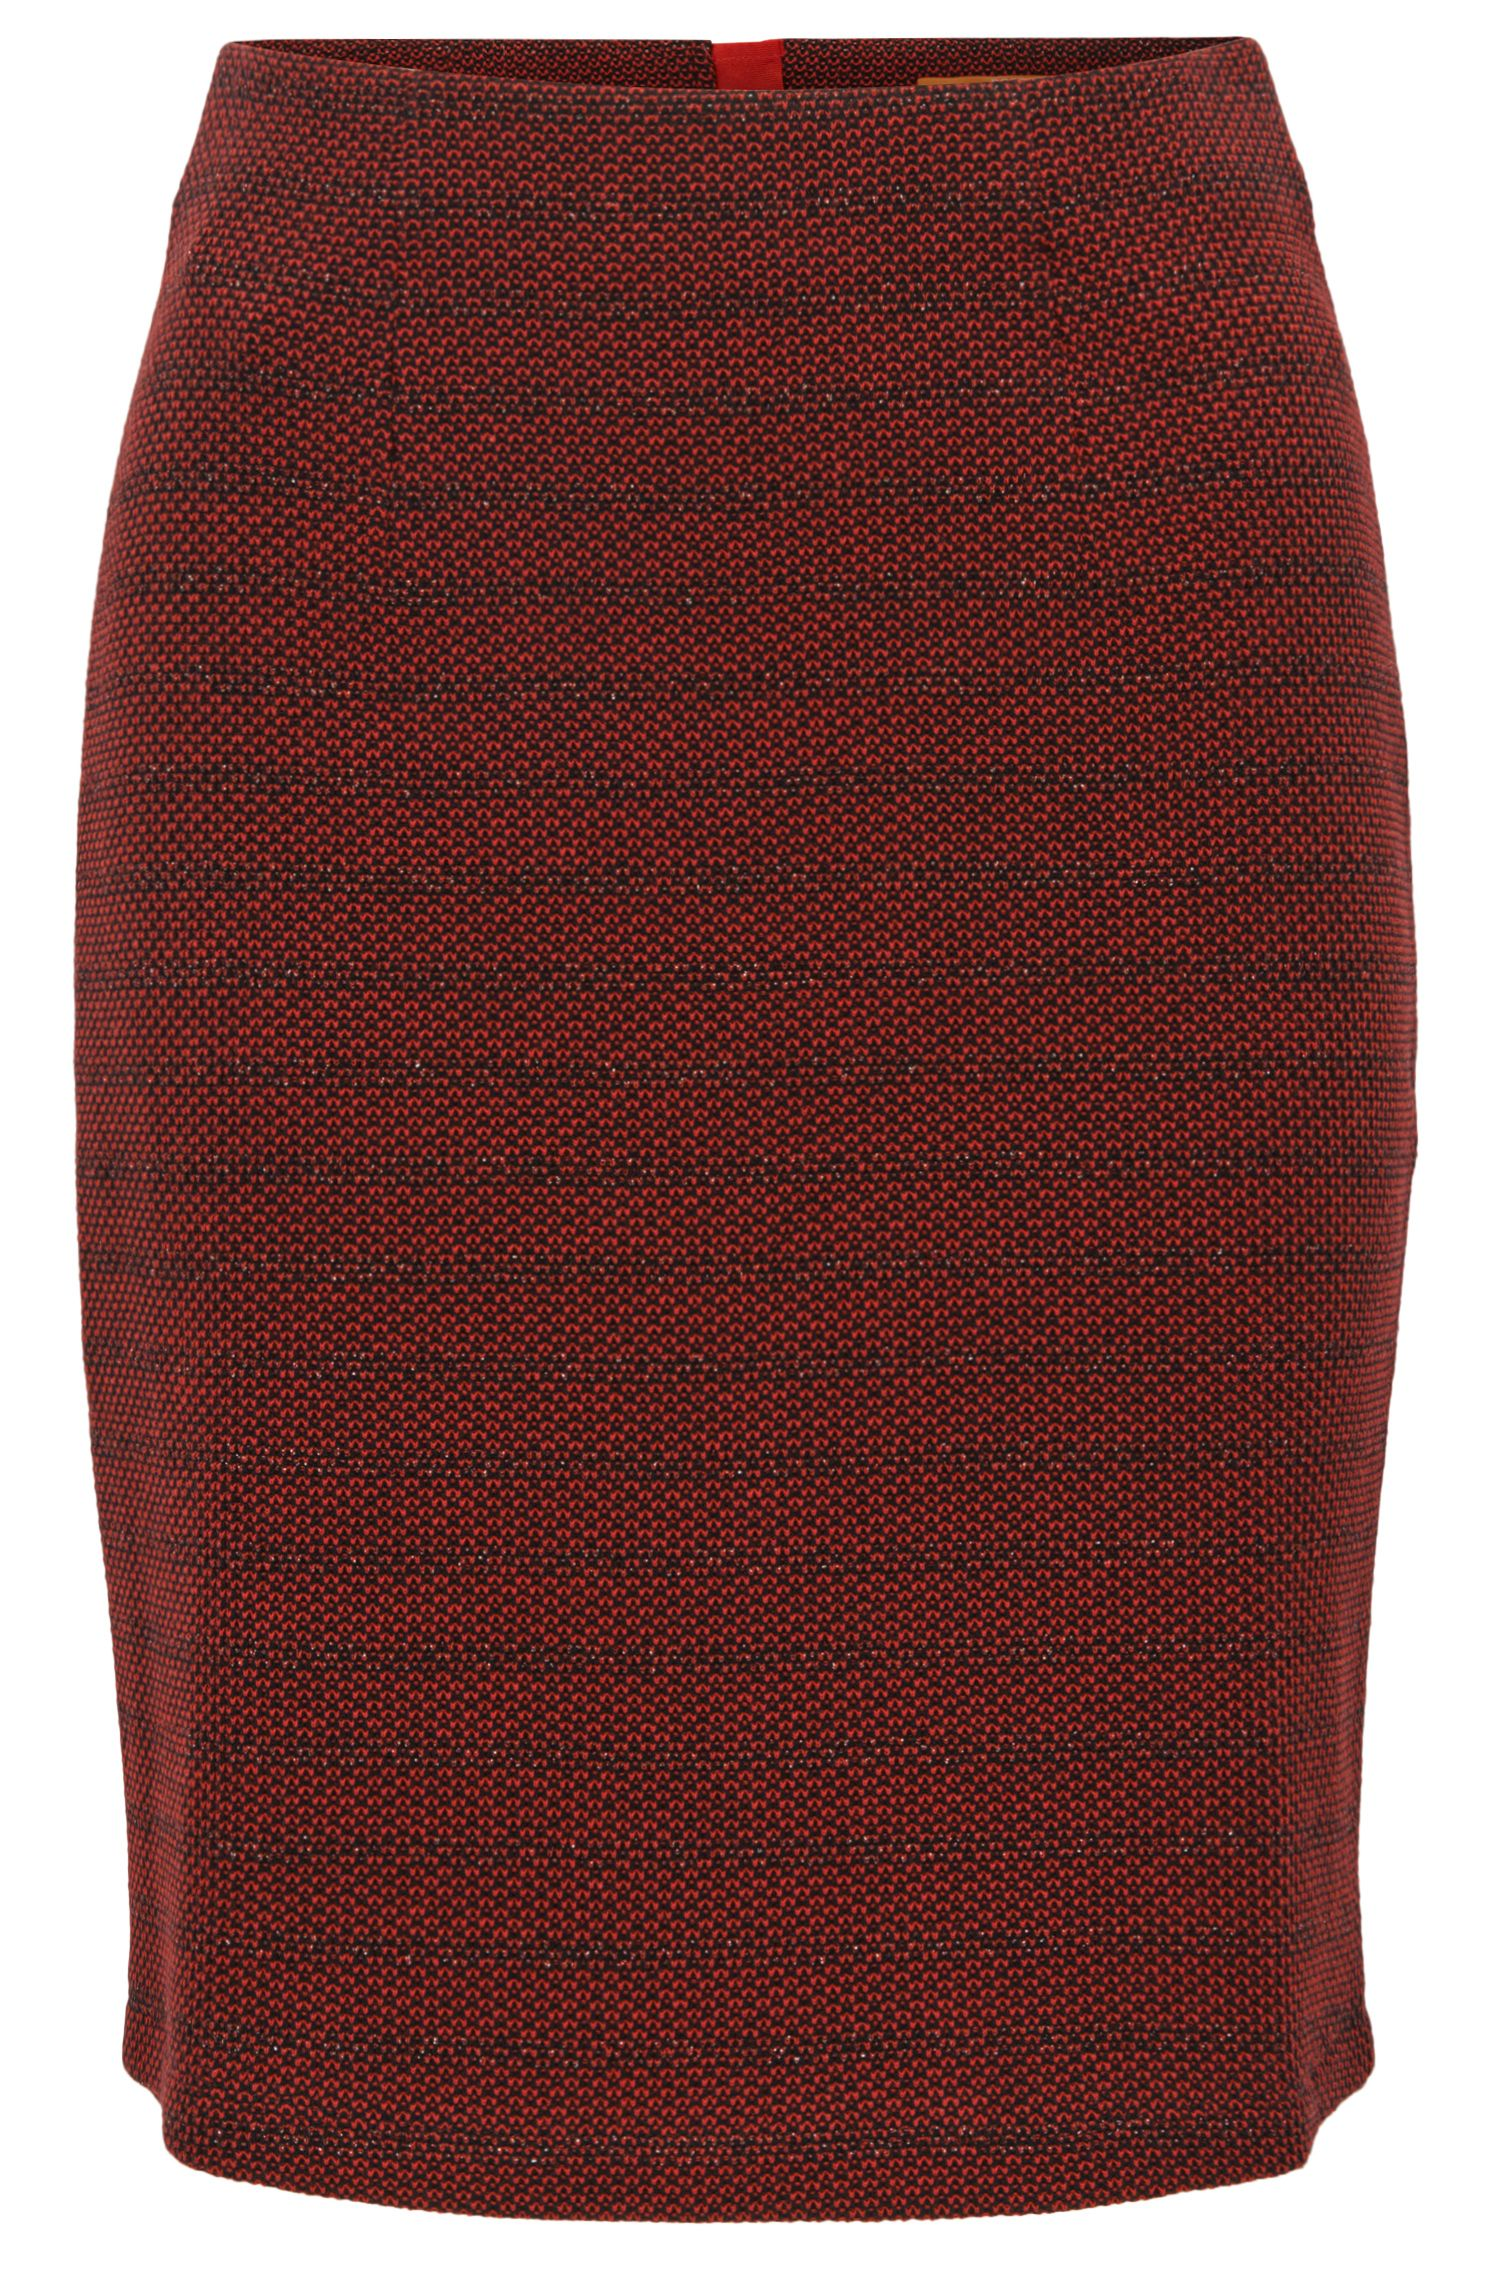 Structured pencil skirt in a cotton blend